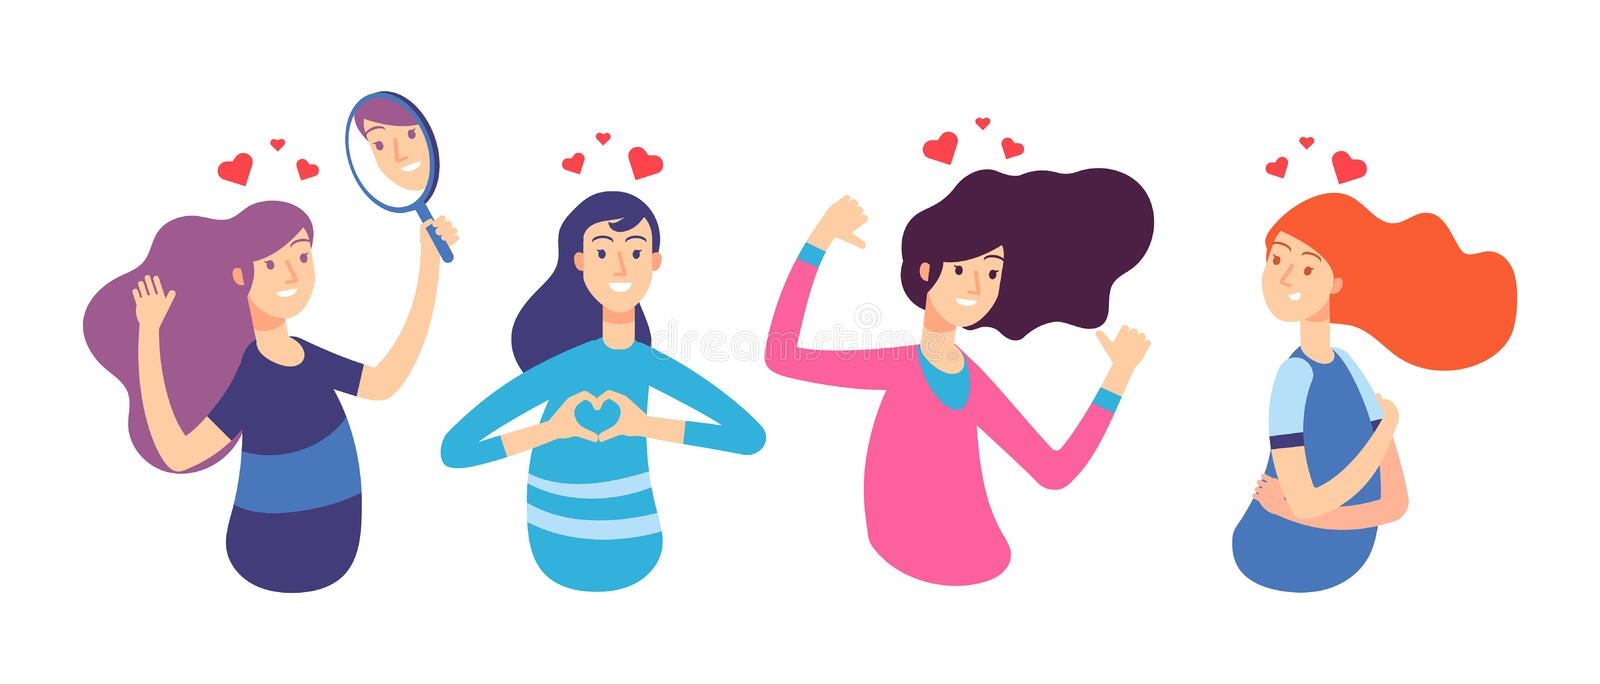 Love yourself. Narcissistic, self-confident people hugged themselves. Loving oneself men and women. Vector characters stock illustration